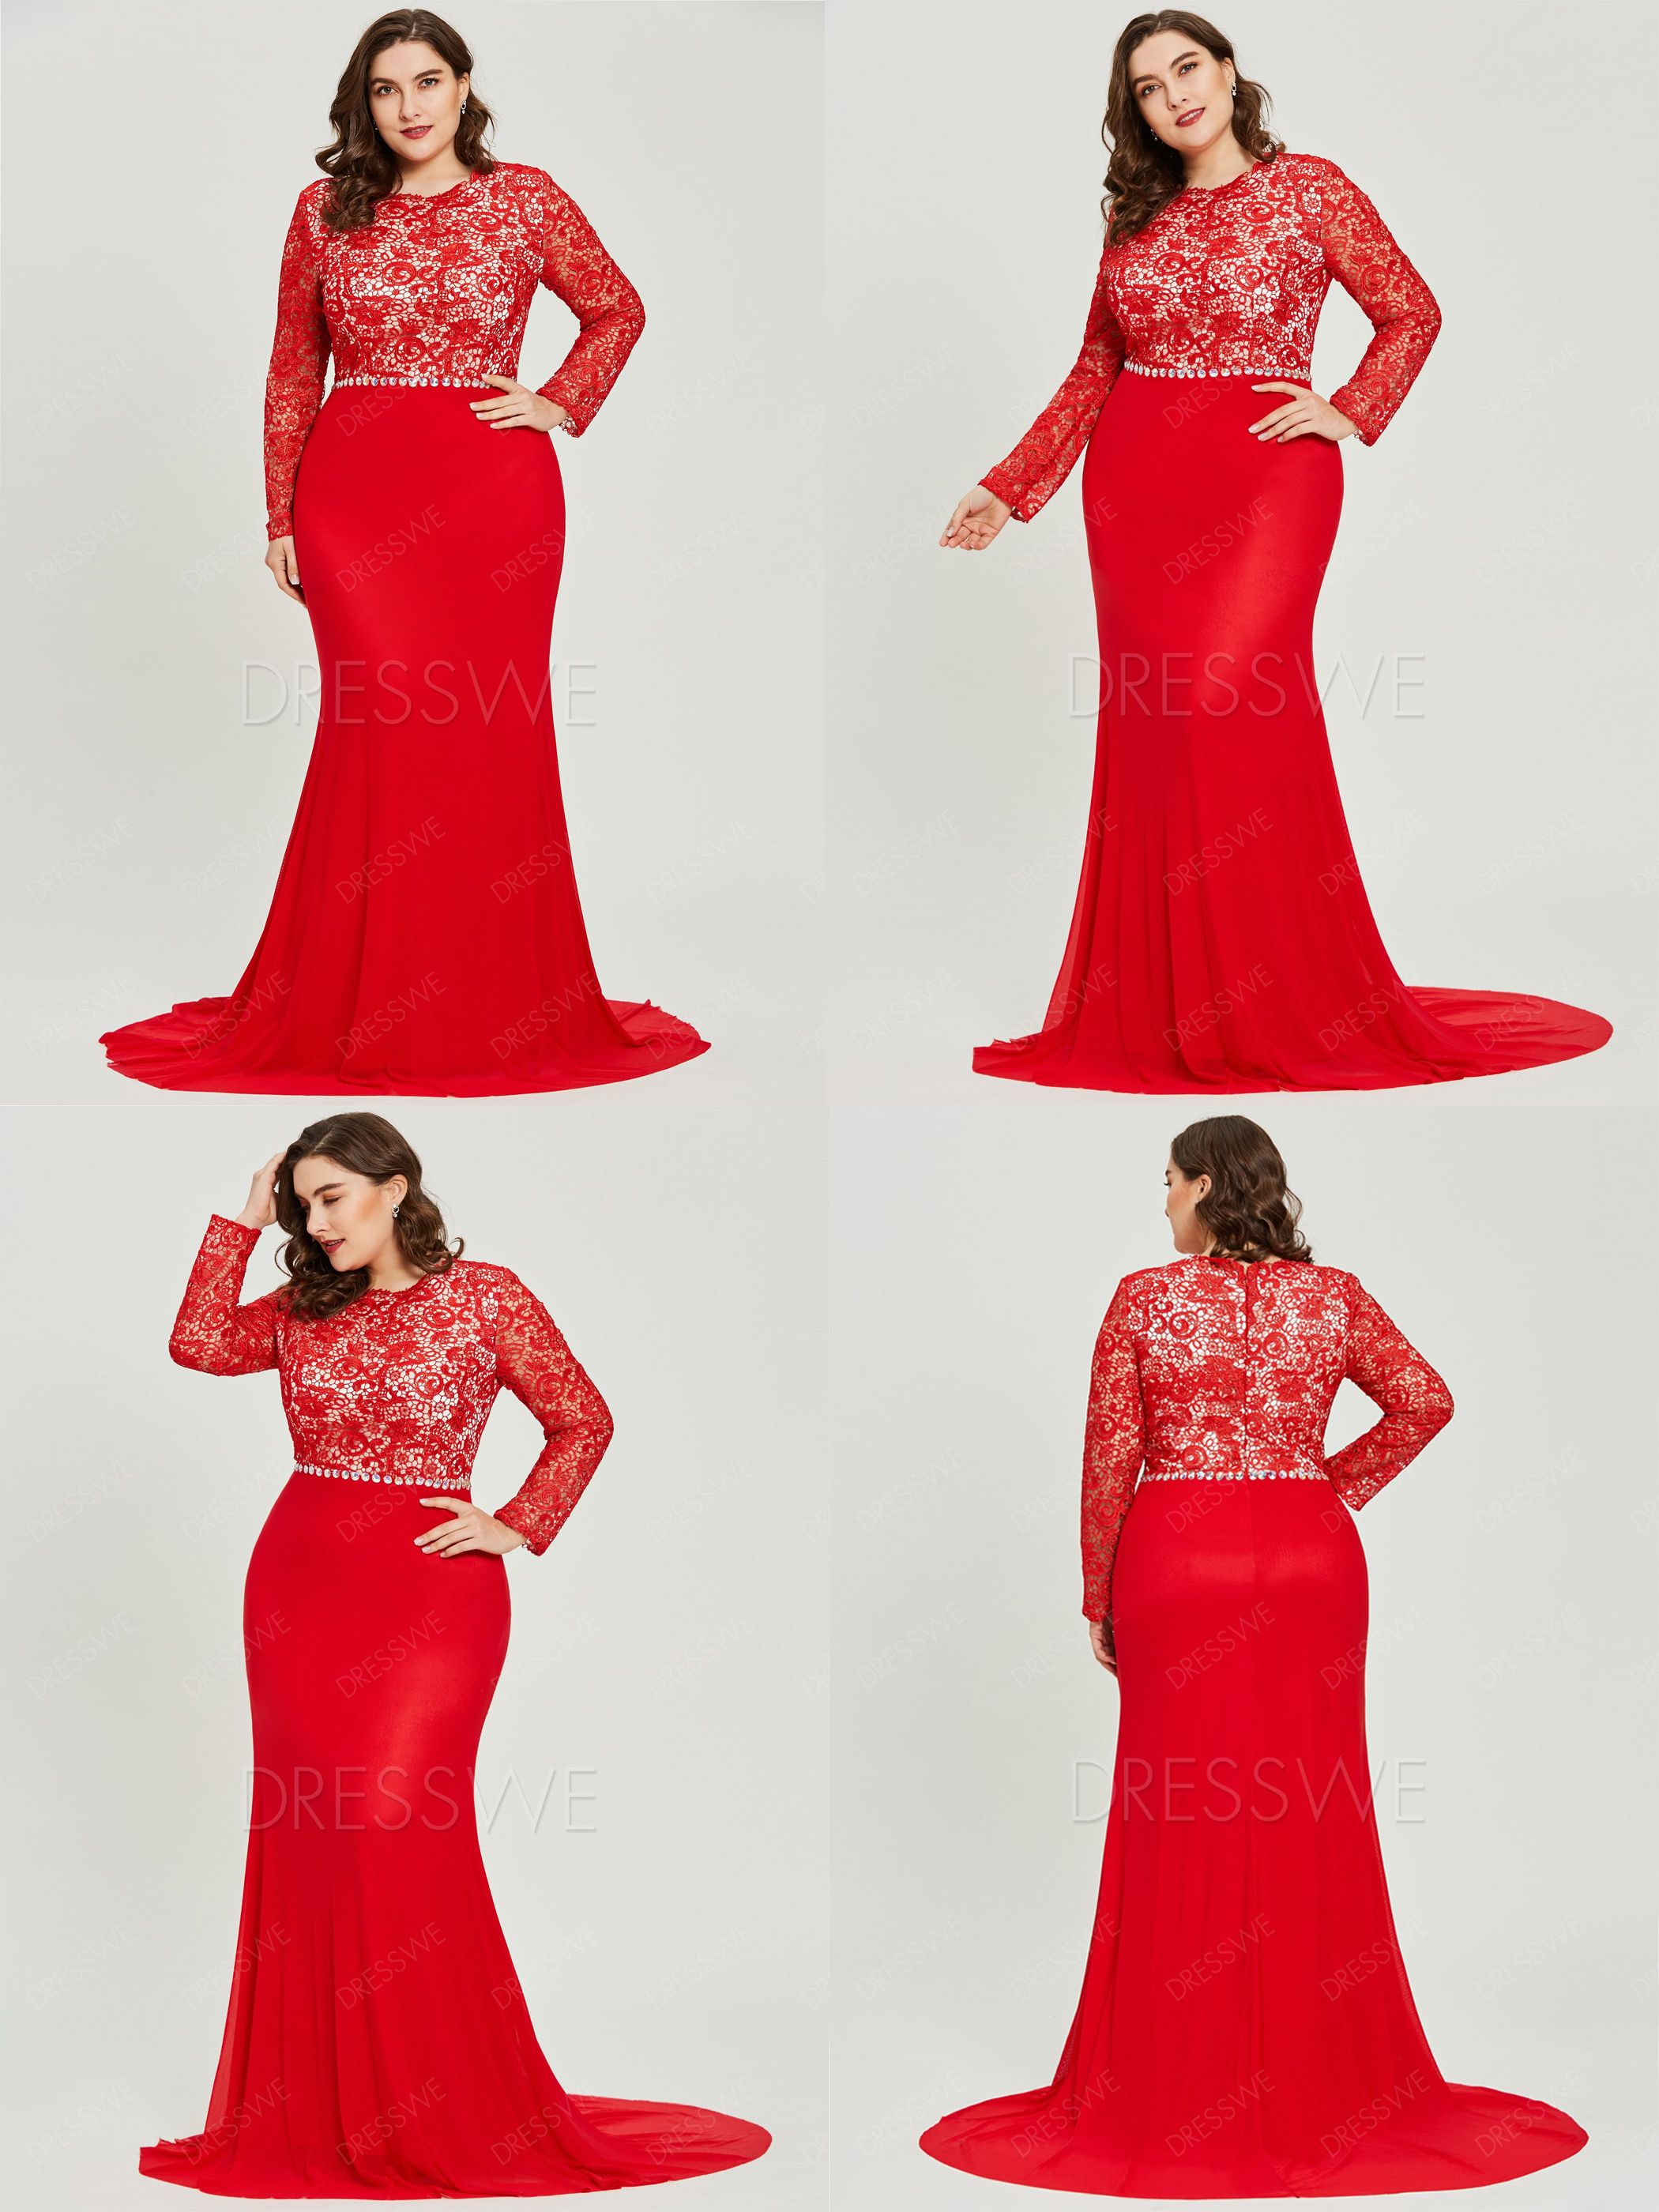 Scoop neck long sleeves lace mermaid plus size evening dress in